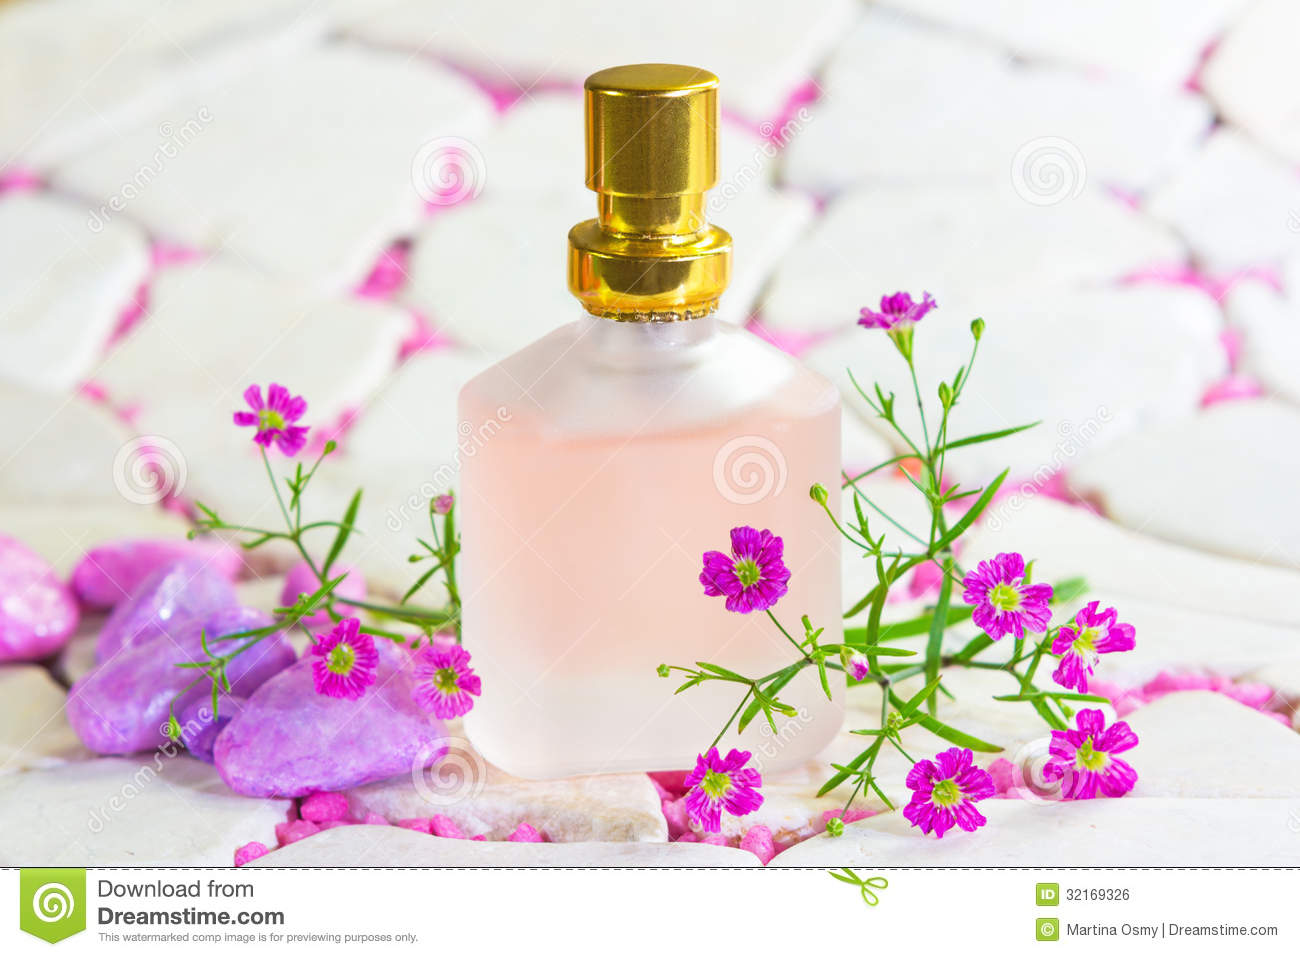 Resenha De Perfumes Kenzo L Eau Par Feminino Preco as well Tinte Pelo Naturtint N 8a Rubio Ceniza likewise Le Parfum Kenzo World 1492 additionally The Perfume Book By Gosha Rubchinskiy furthermore P. on kenzo perfume